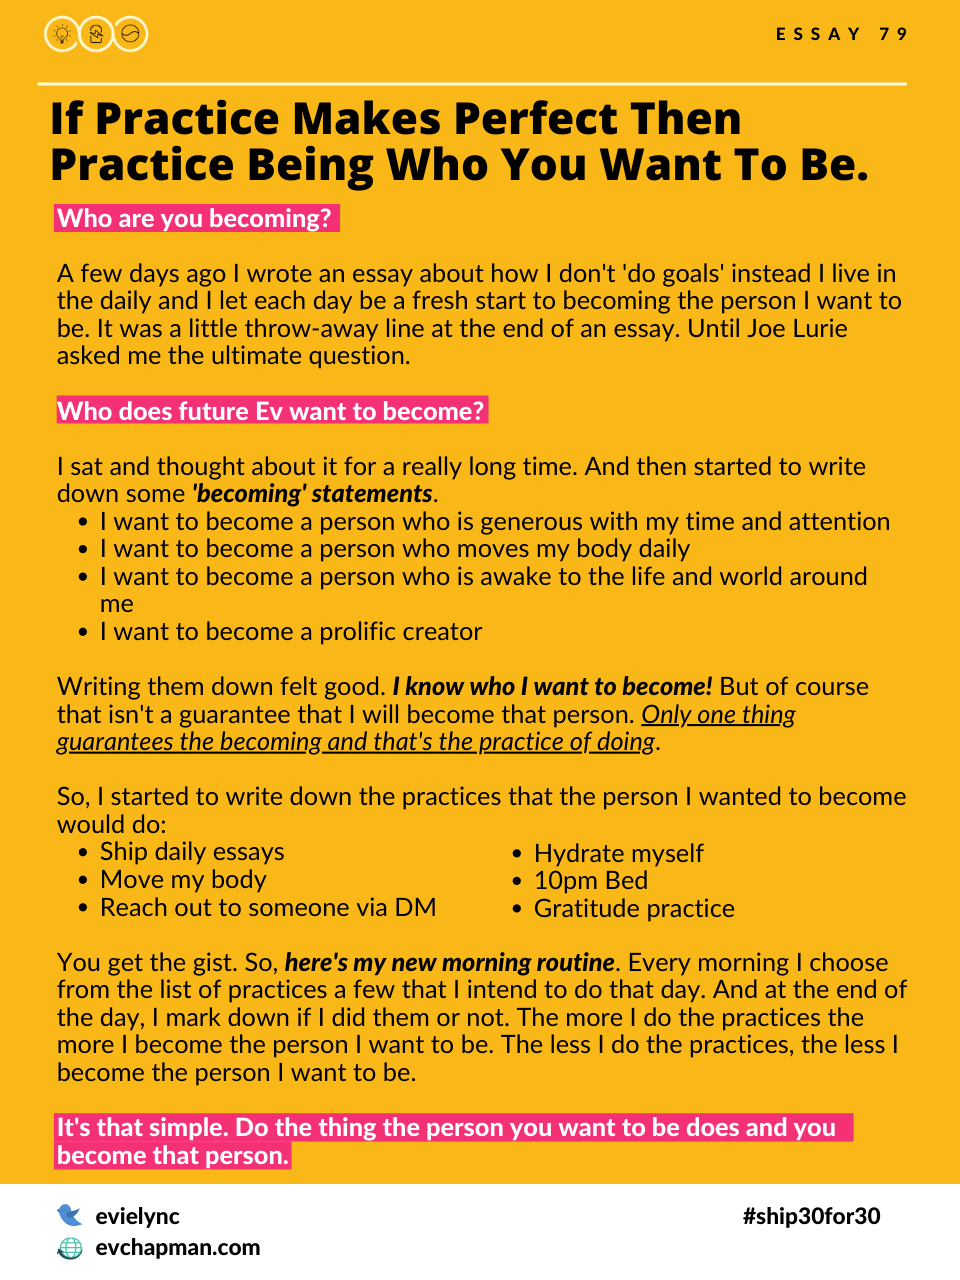 If Practice Makes Perfect Then Practice Being Who You Want To Be.